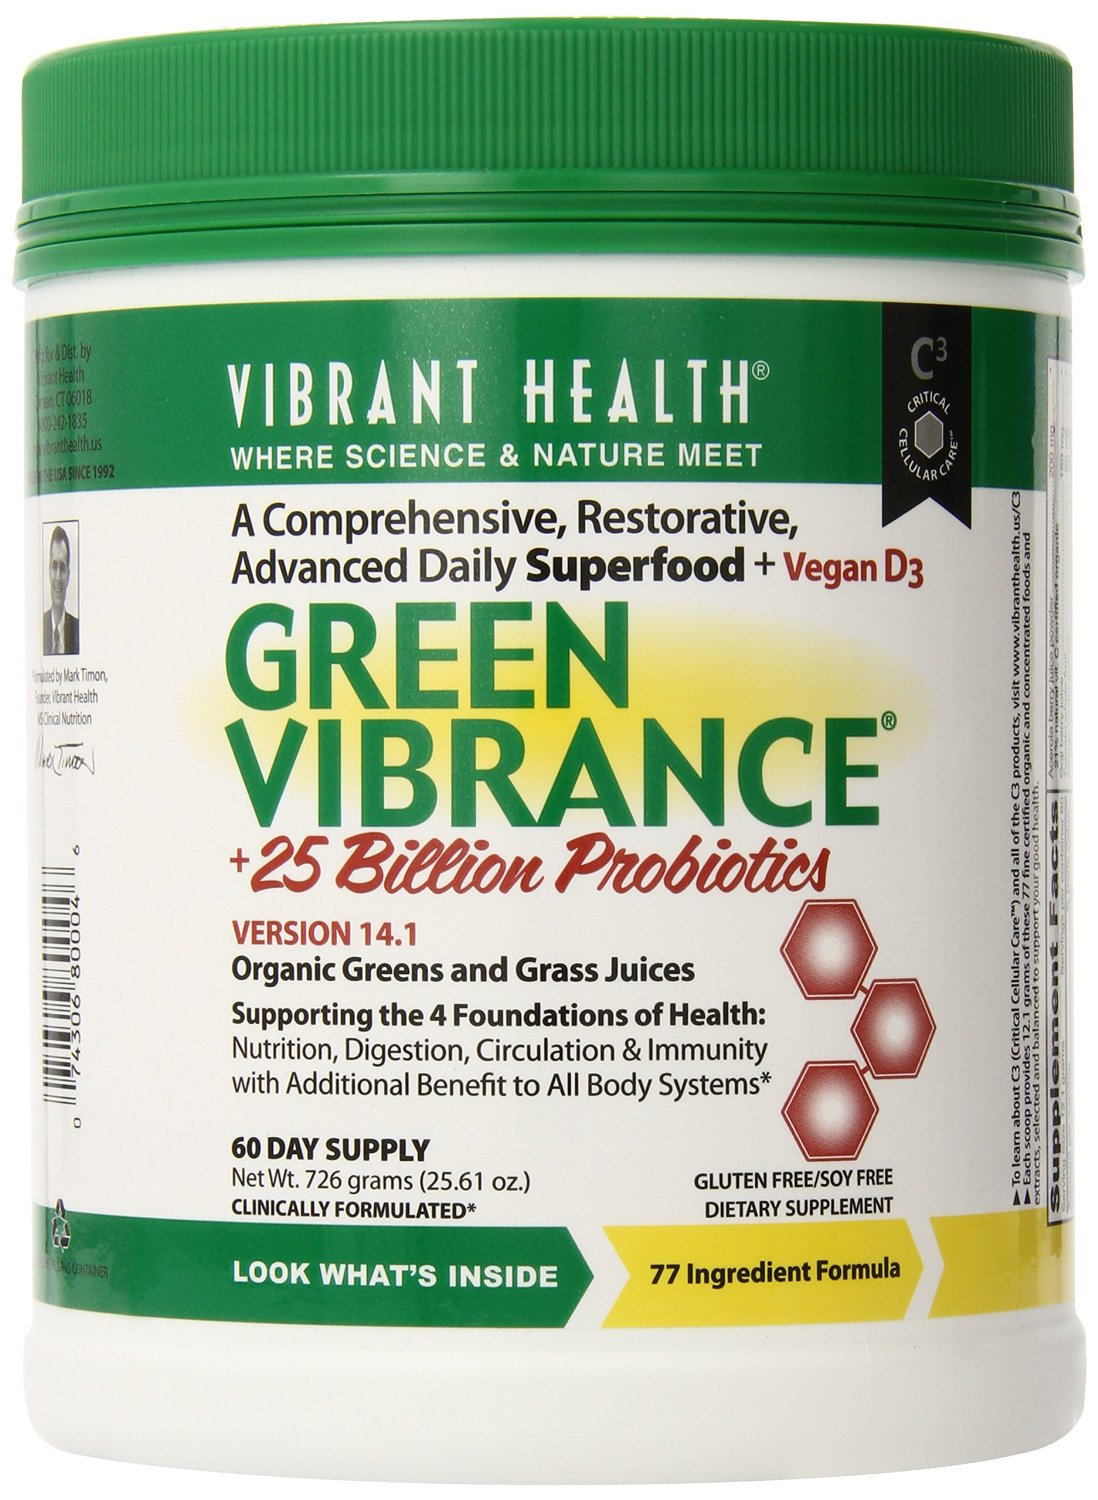 This award winning green superfood , made with mostly organic or wild-harvested ingredients, has replaced my daily multi.